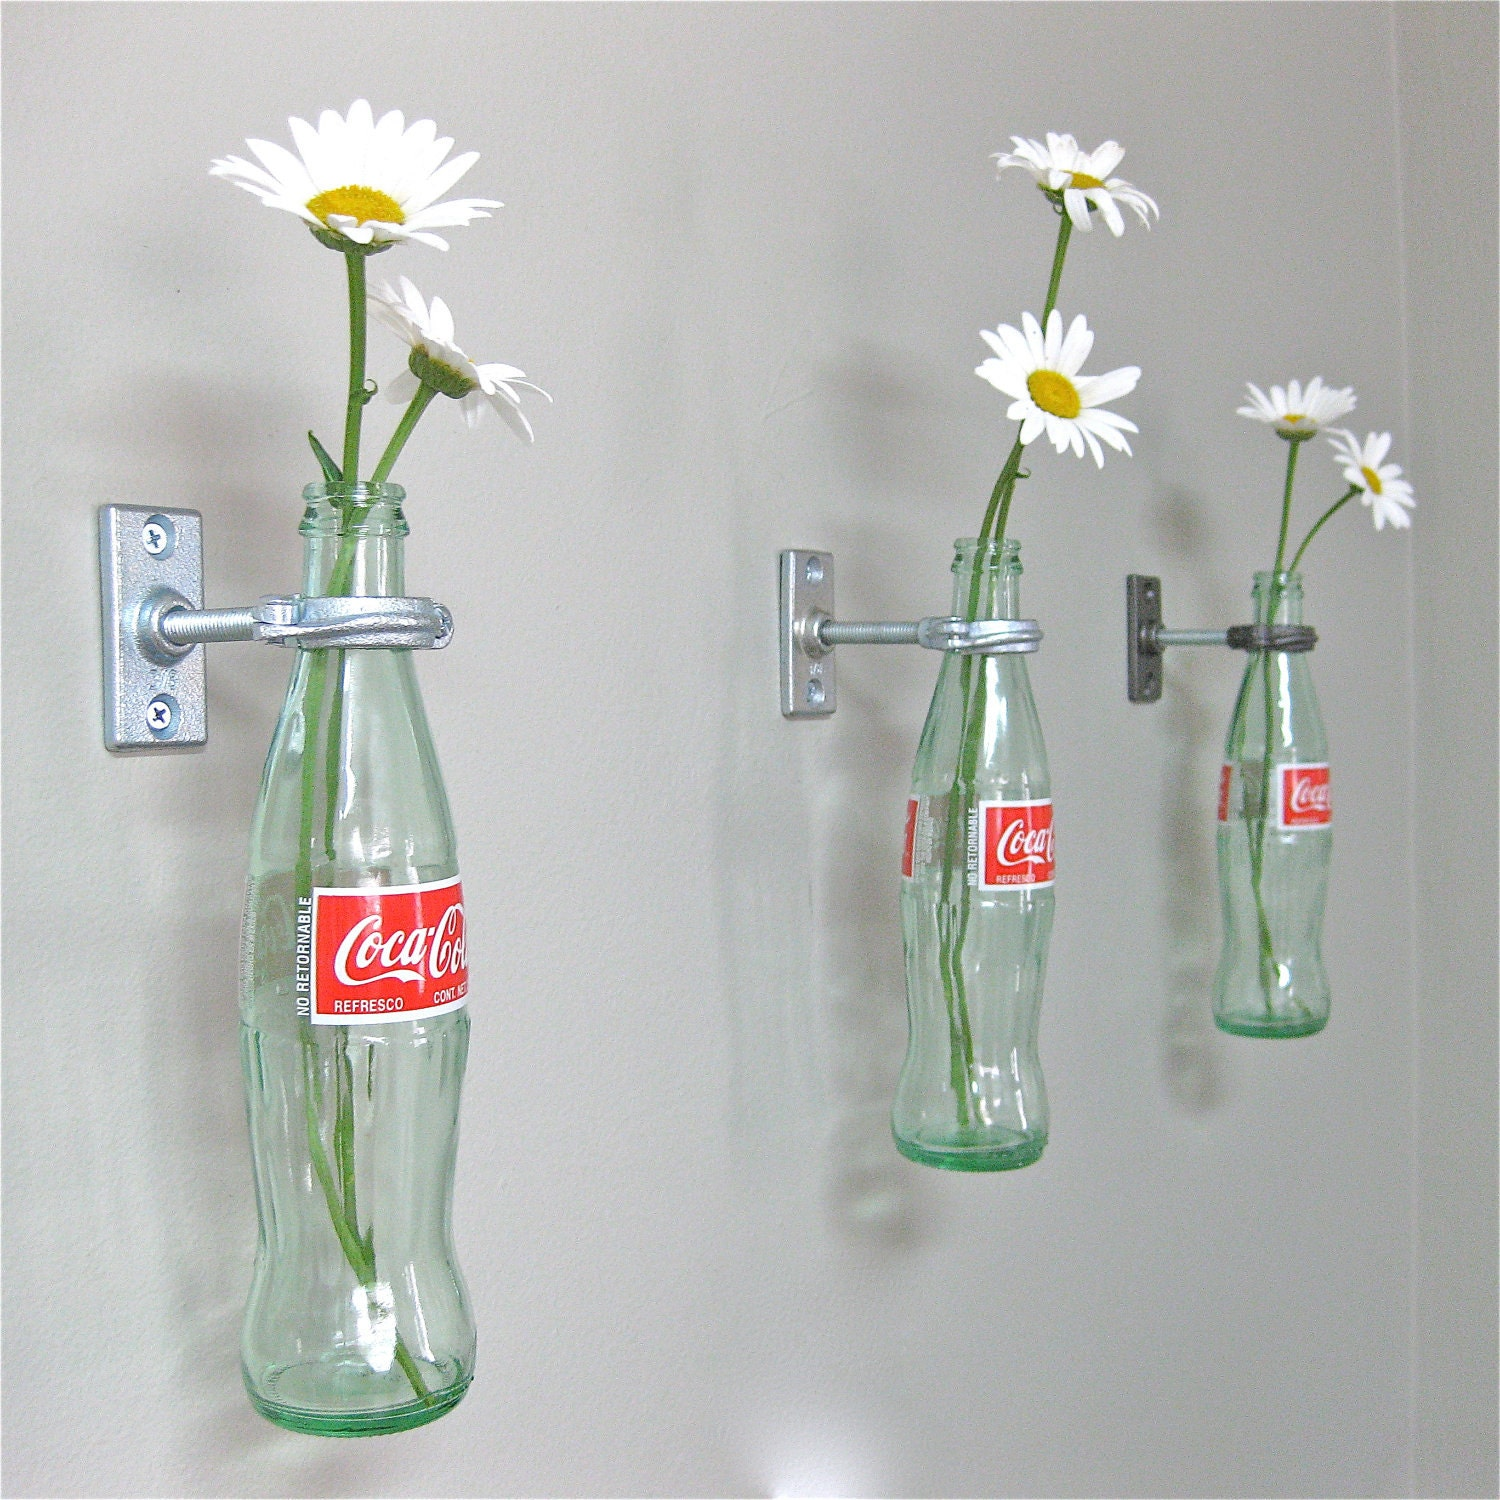 2 coca cola bottle hanging flower vases mothers day gift zoom reviewsmspy